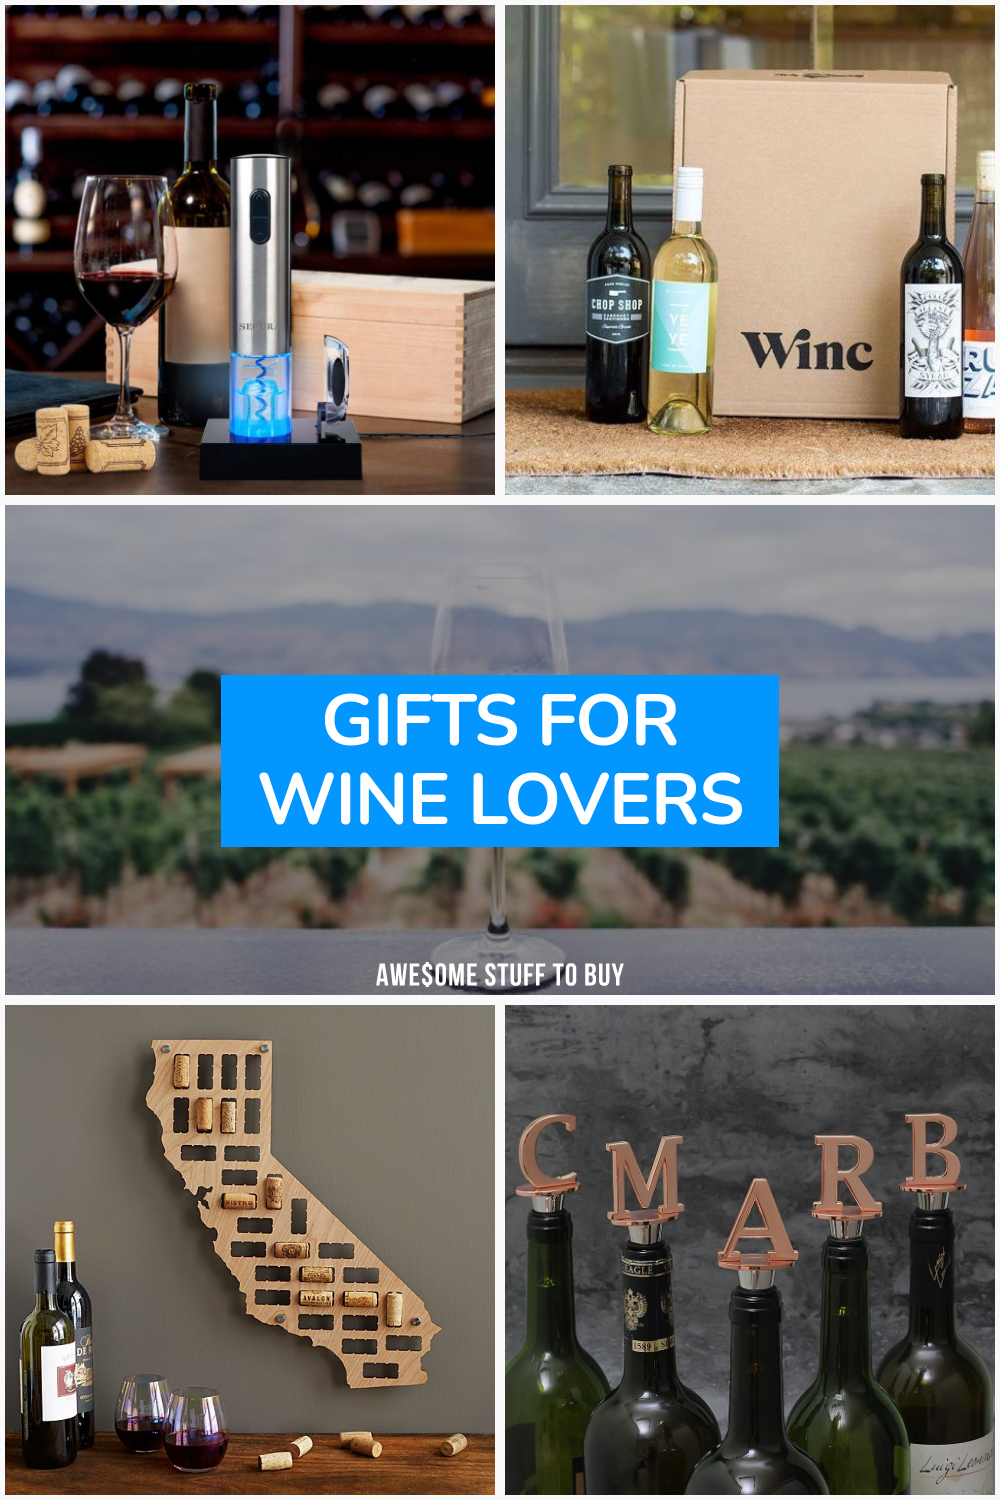 Gifts for Wine Lovers // Awesome Stuff to Buy